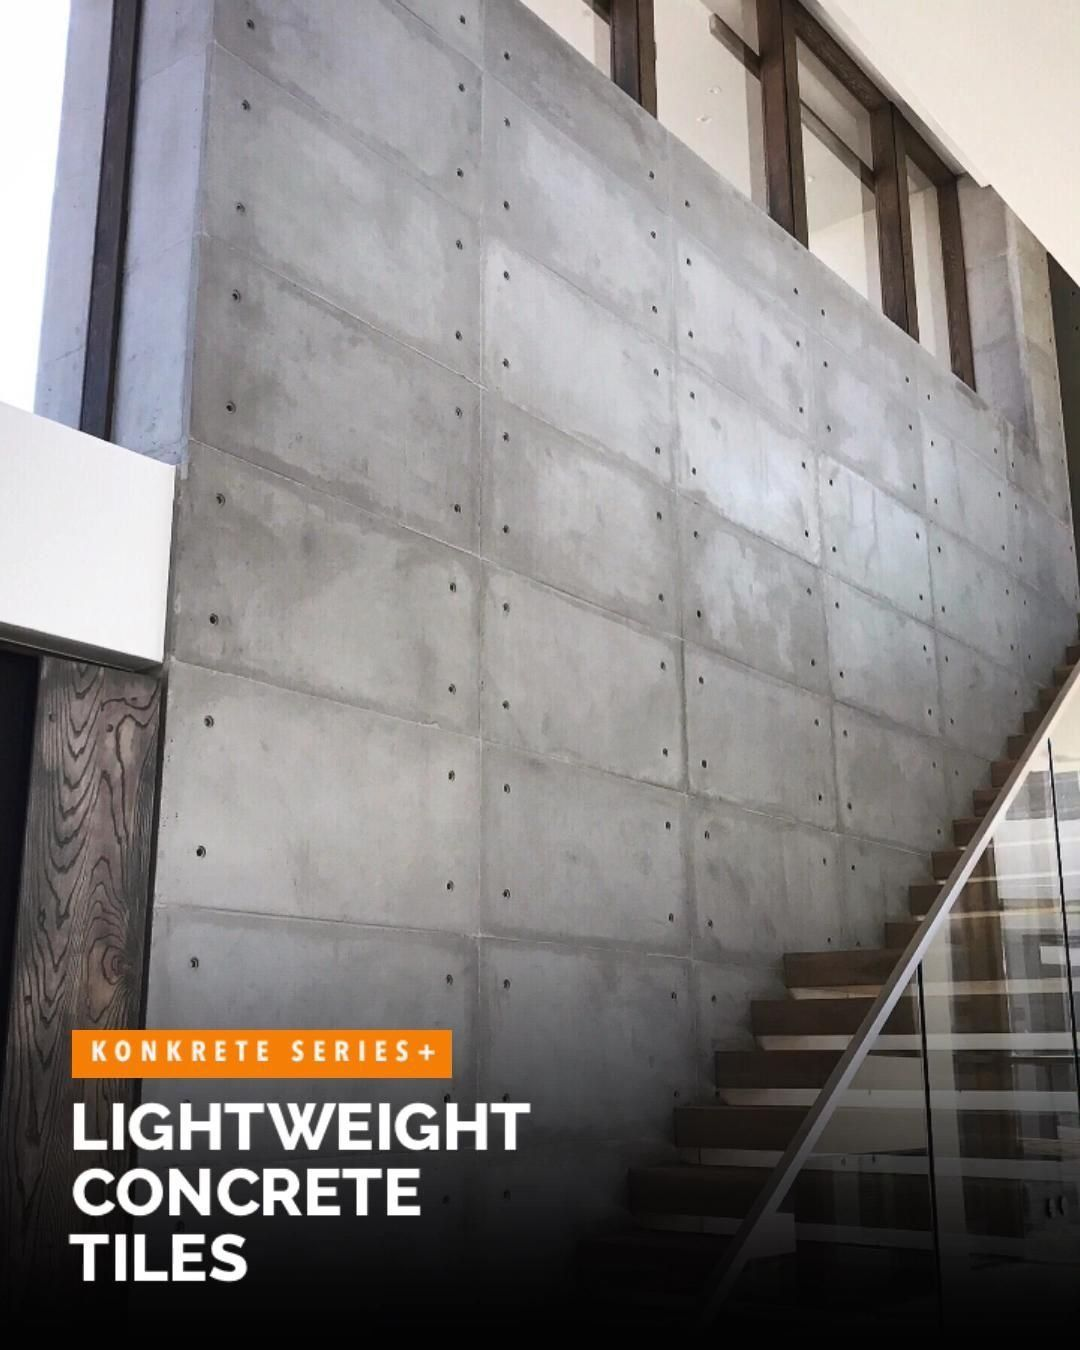 Lightweight Concrete Wall Tiles Konkrete4 By Float 1000 In 2020 Concrete Wall Exterior Wall Panels Modern House Exterior